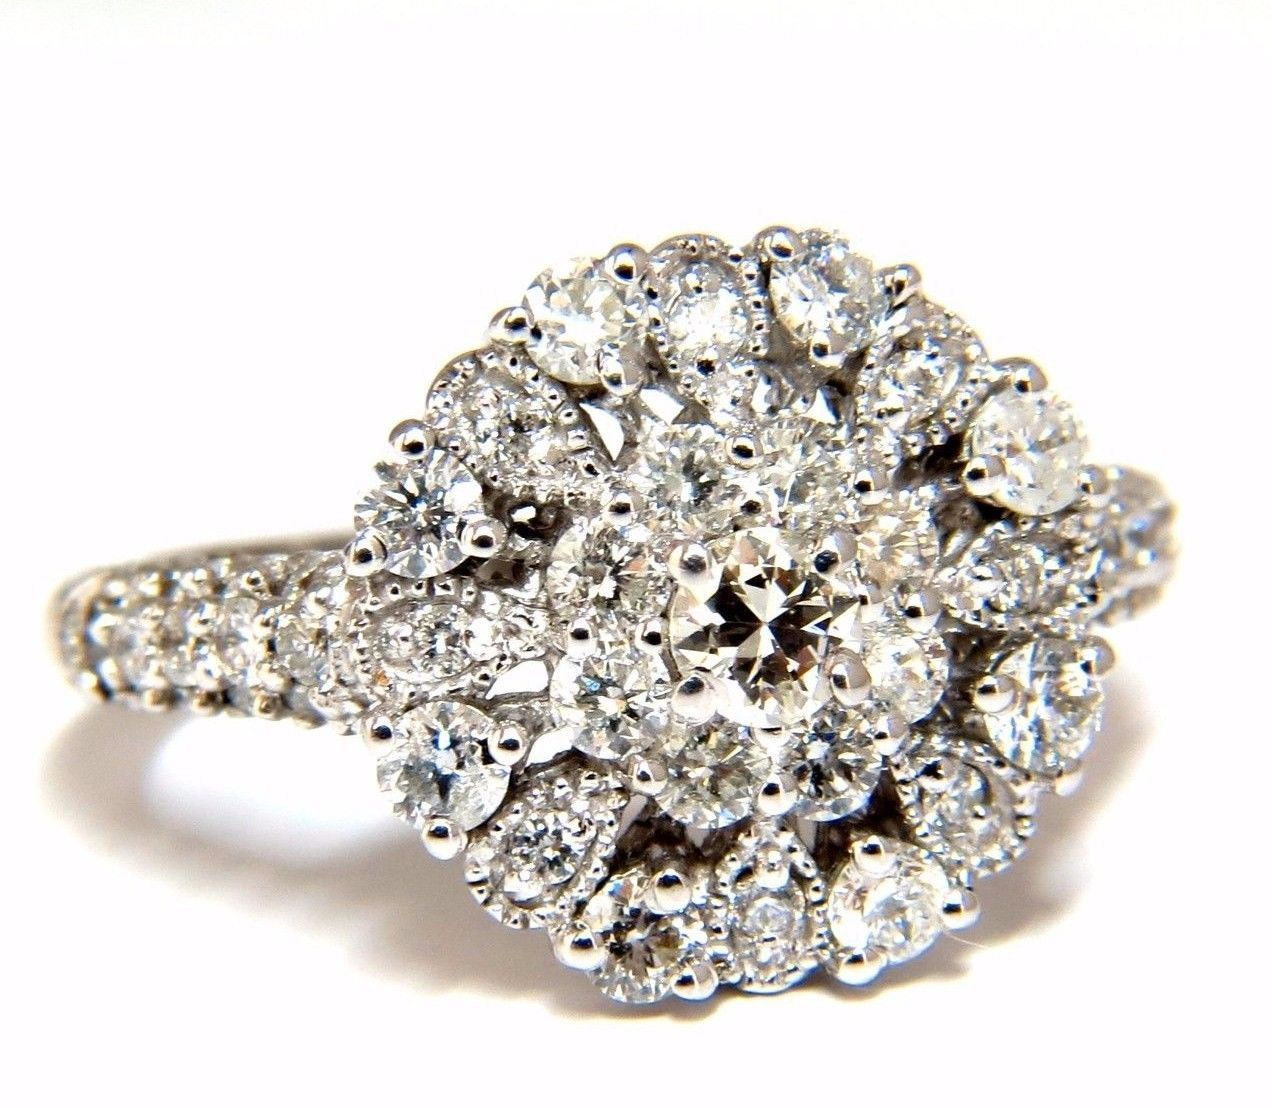 mod with a rings diamond in frame ring cfm oval engagement cathedral engagementdetails